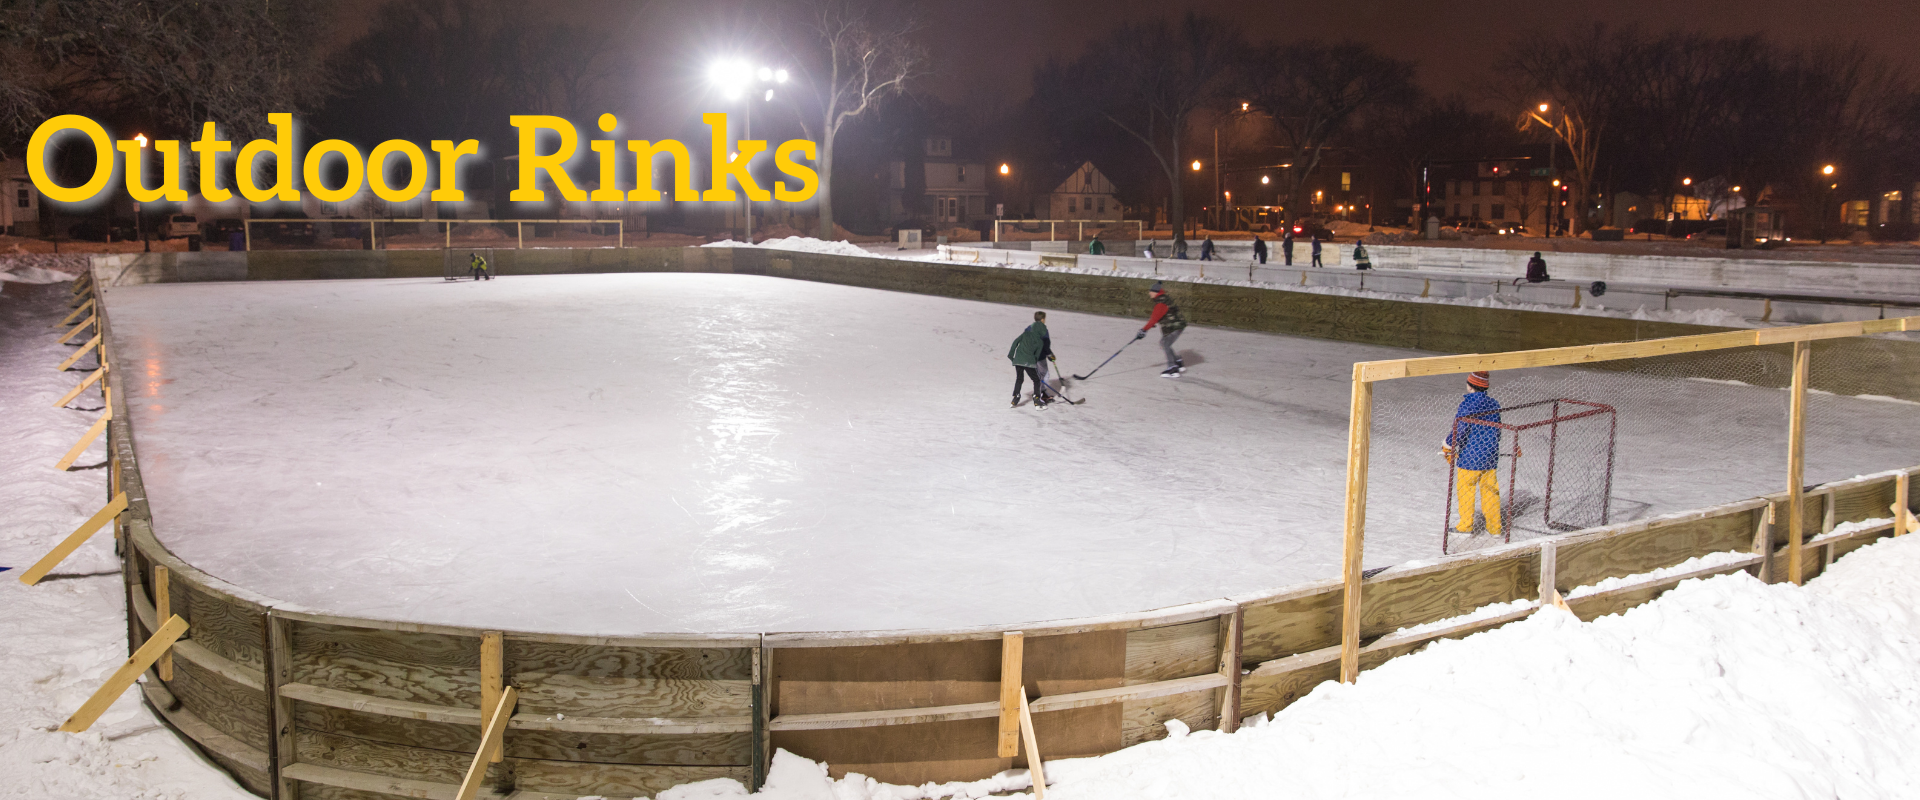 This image shows four people playing hockey on an outdoor ice rink.